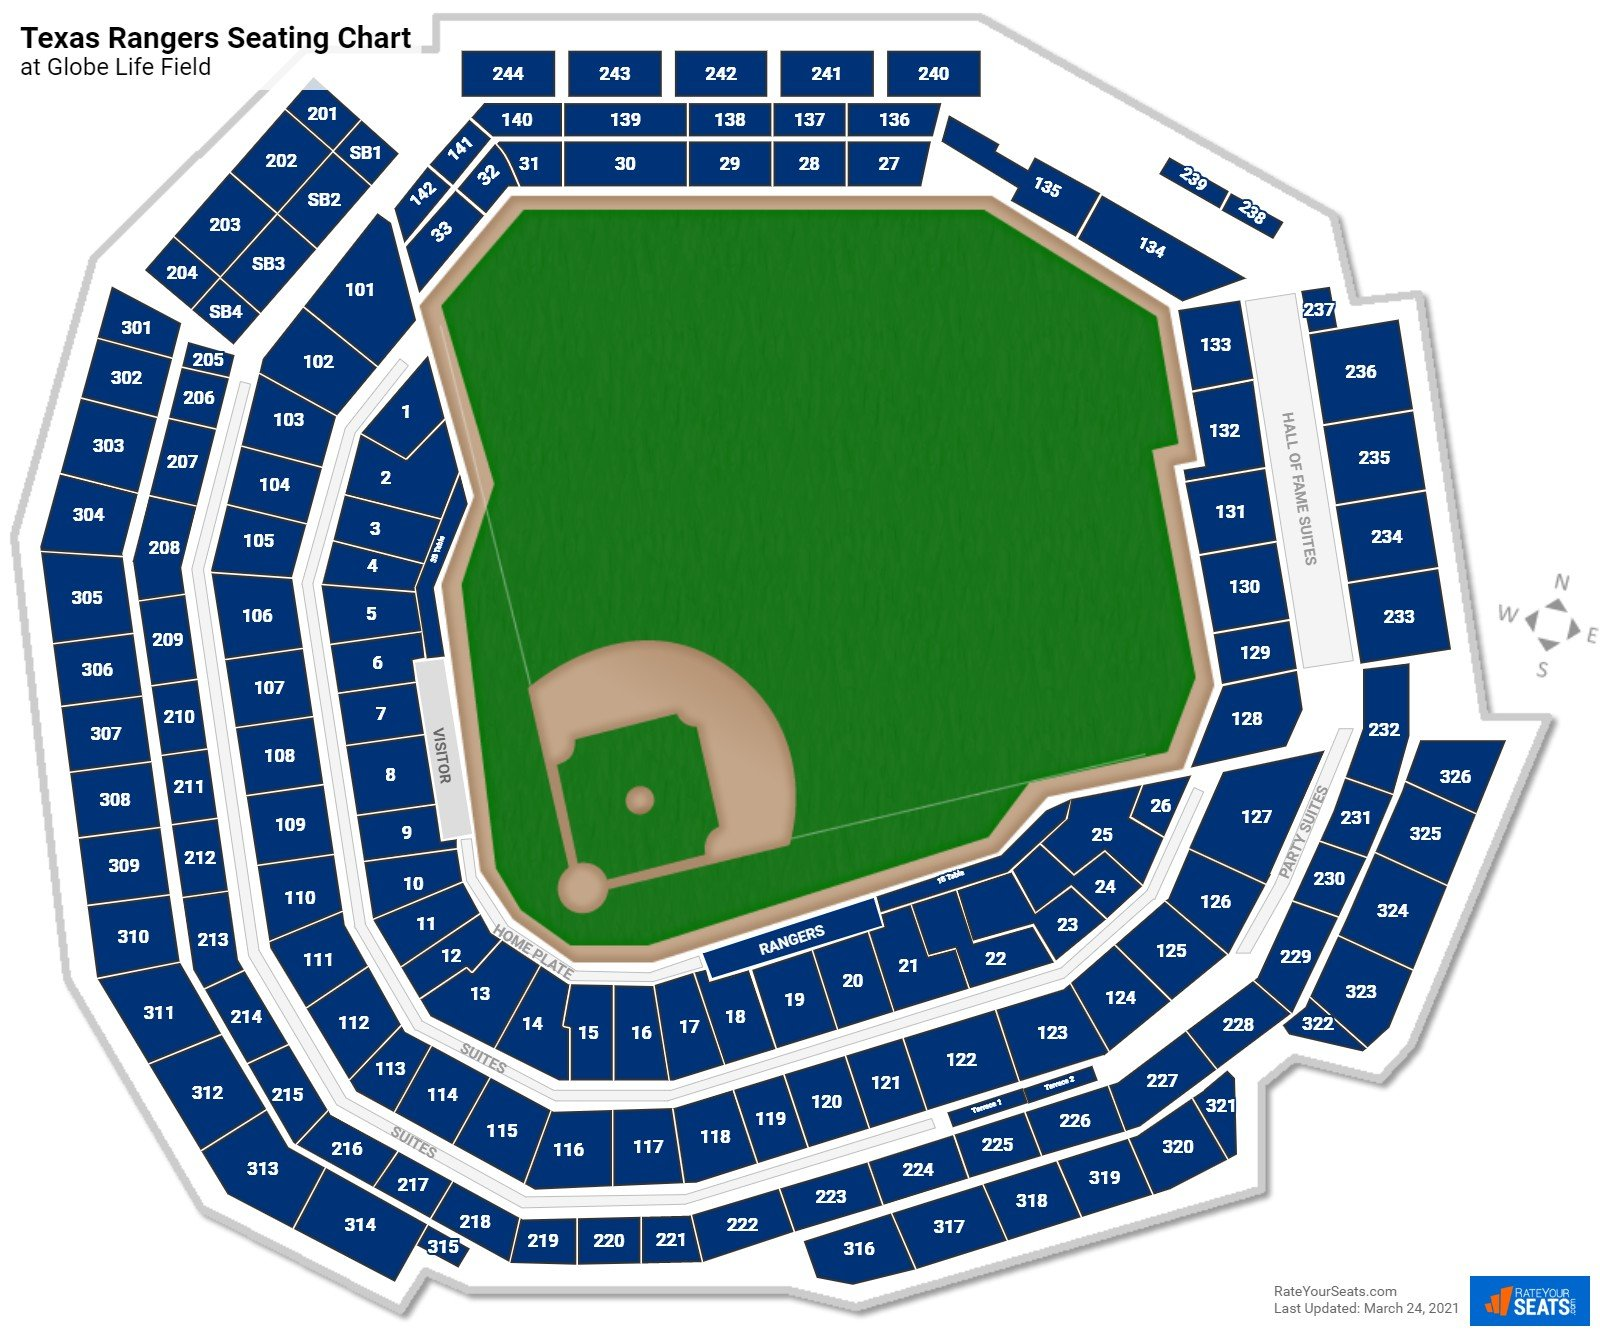 Texas Rangers Seating Chart